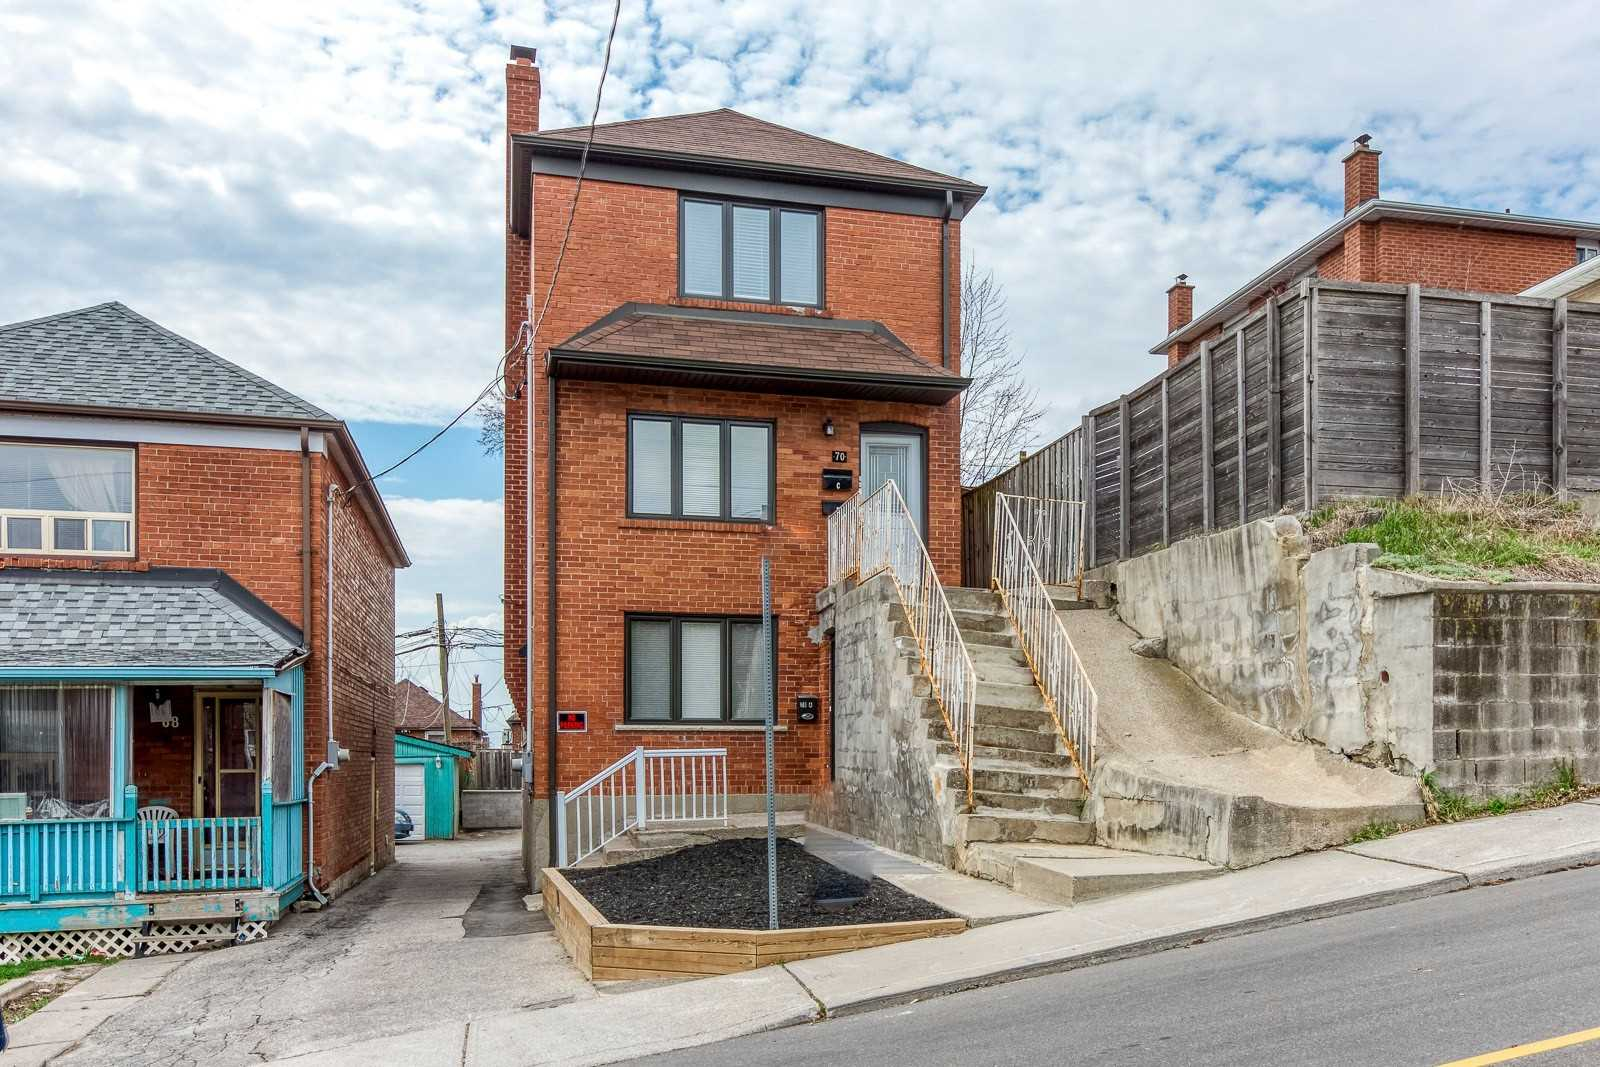 70 Lacey Ave, Toronto, Ontario M6M3L7, 3 Bedrooms Bedrooms, 6 Rooms Rooms,3 BathroomsBathrooms,Triplex,For Sale,Lacey,W5192266